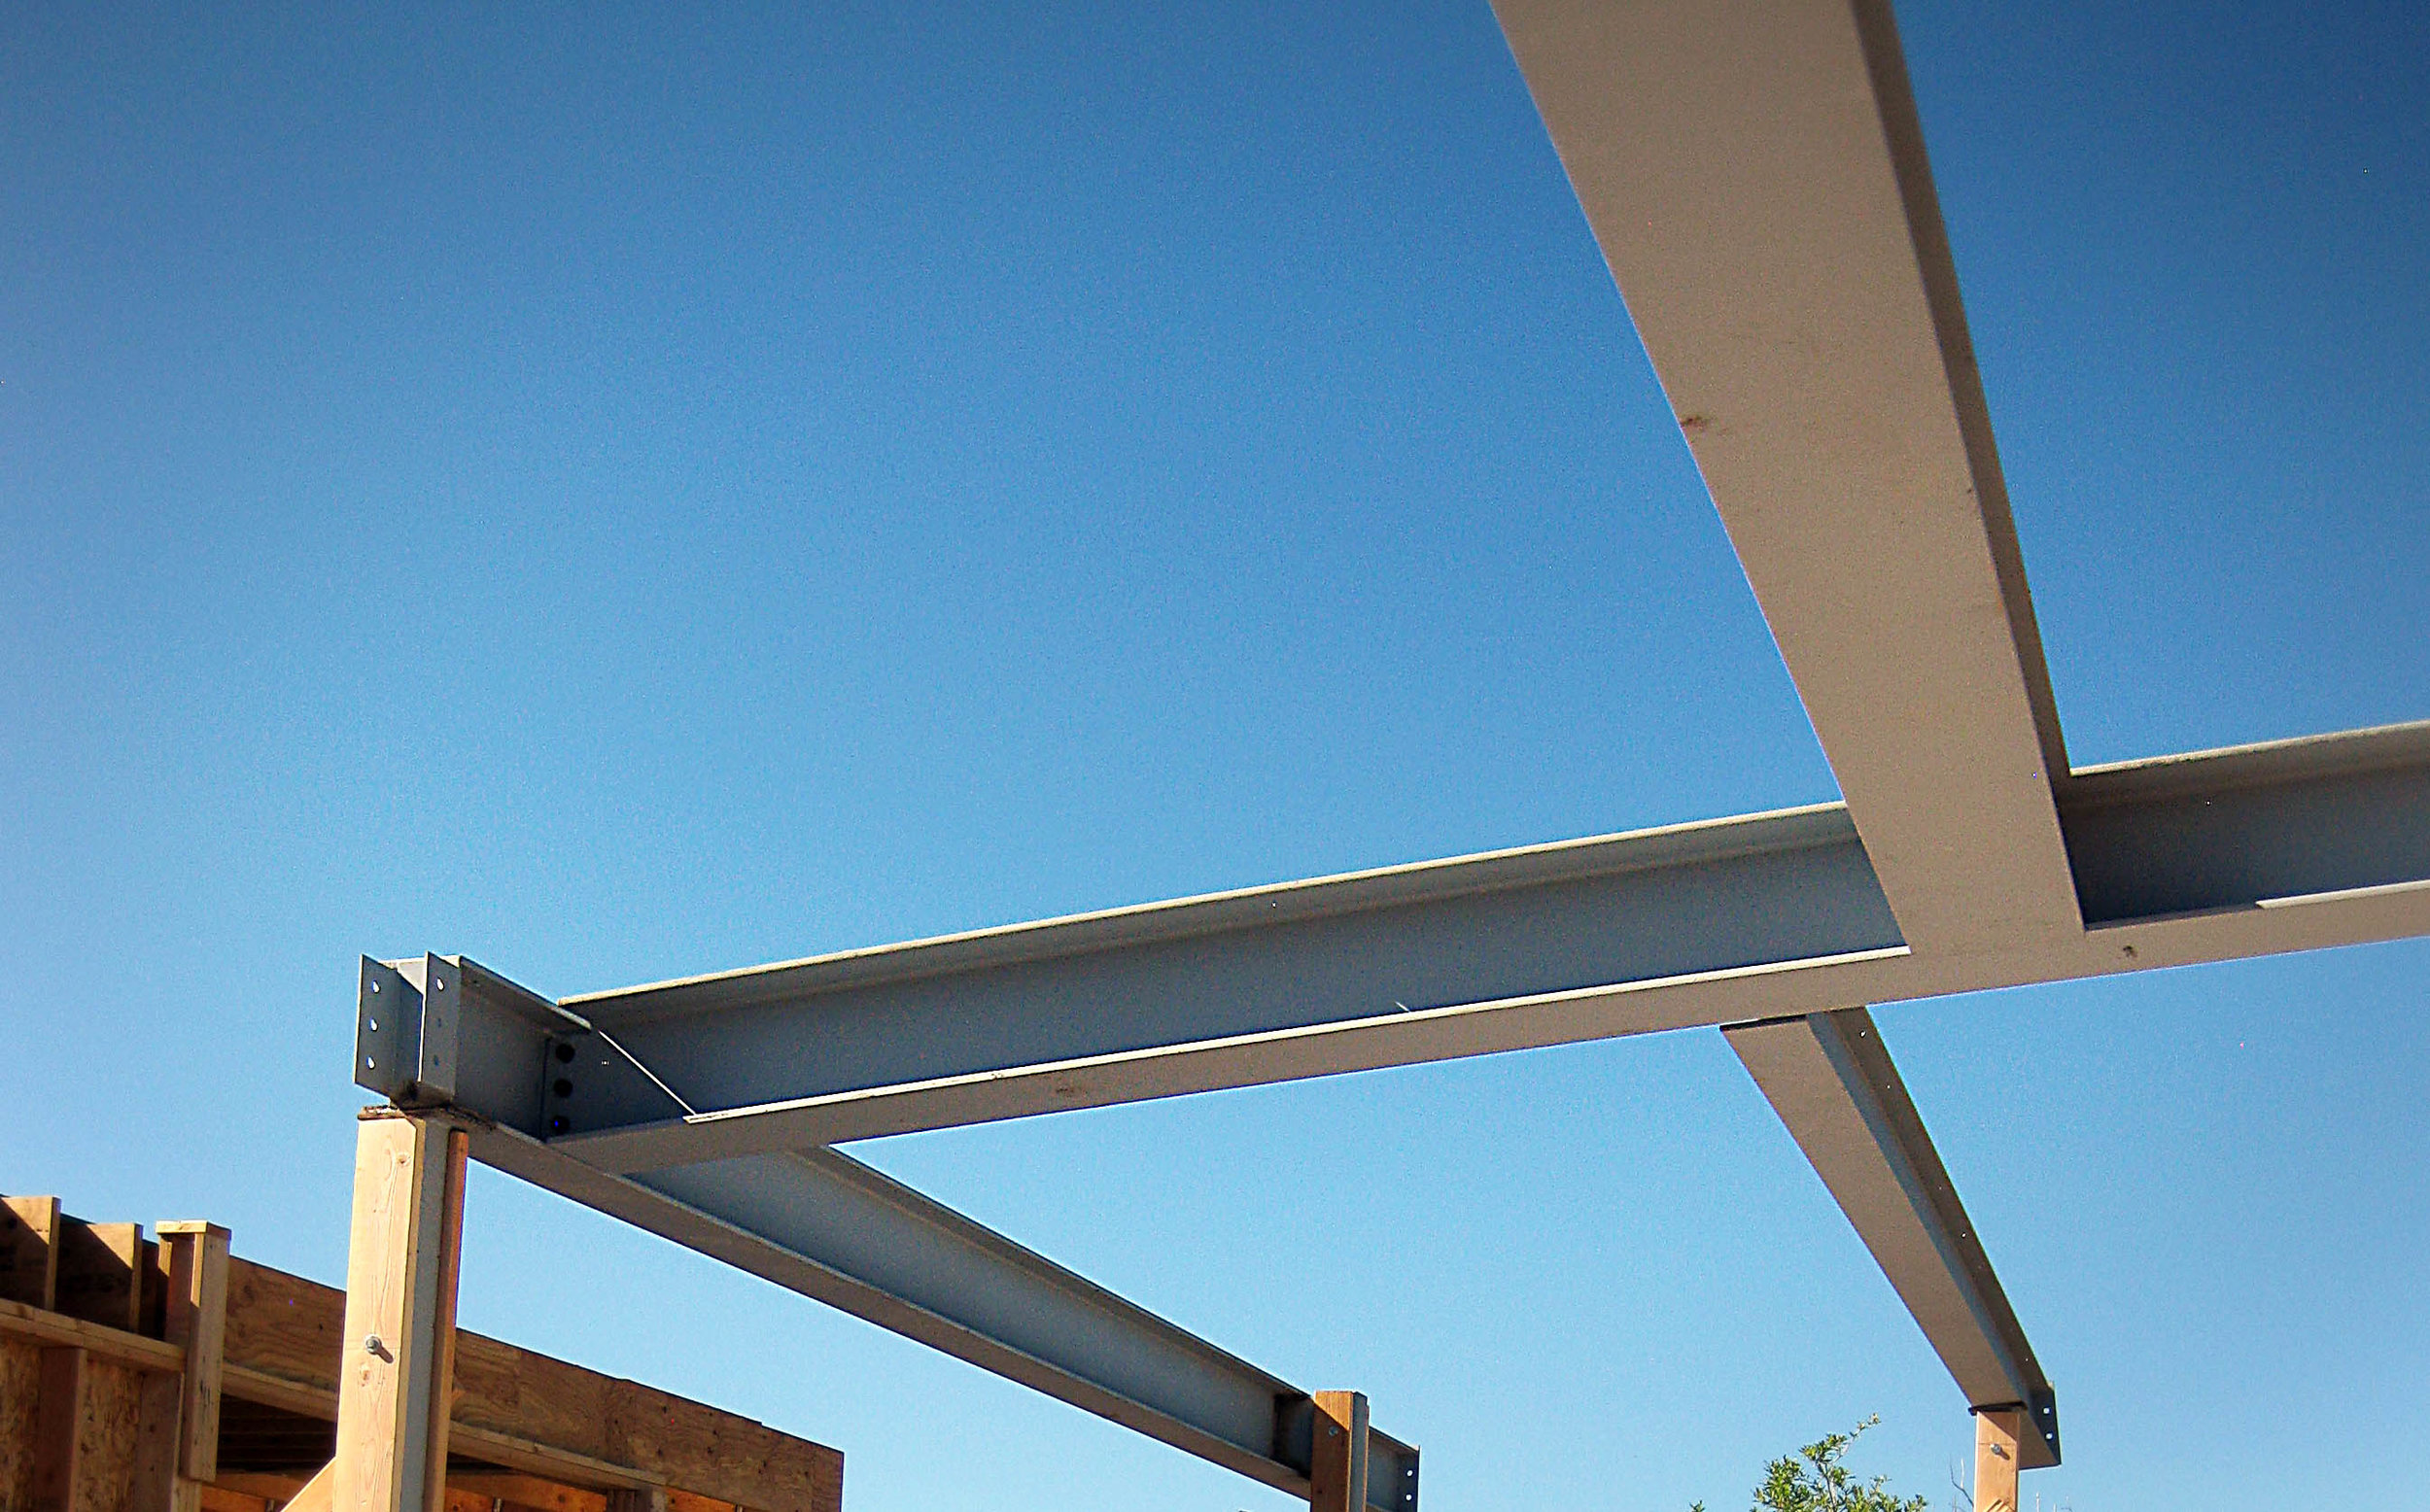 structural steel beams of a contemporary style home viewed during a site visit in a project's construction observation phase